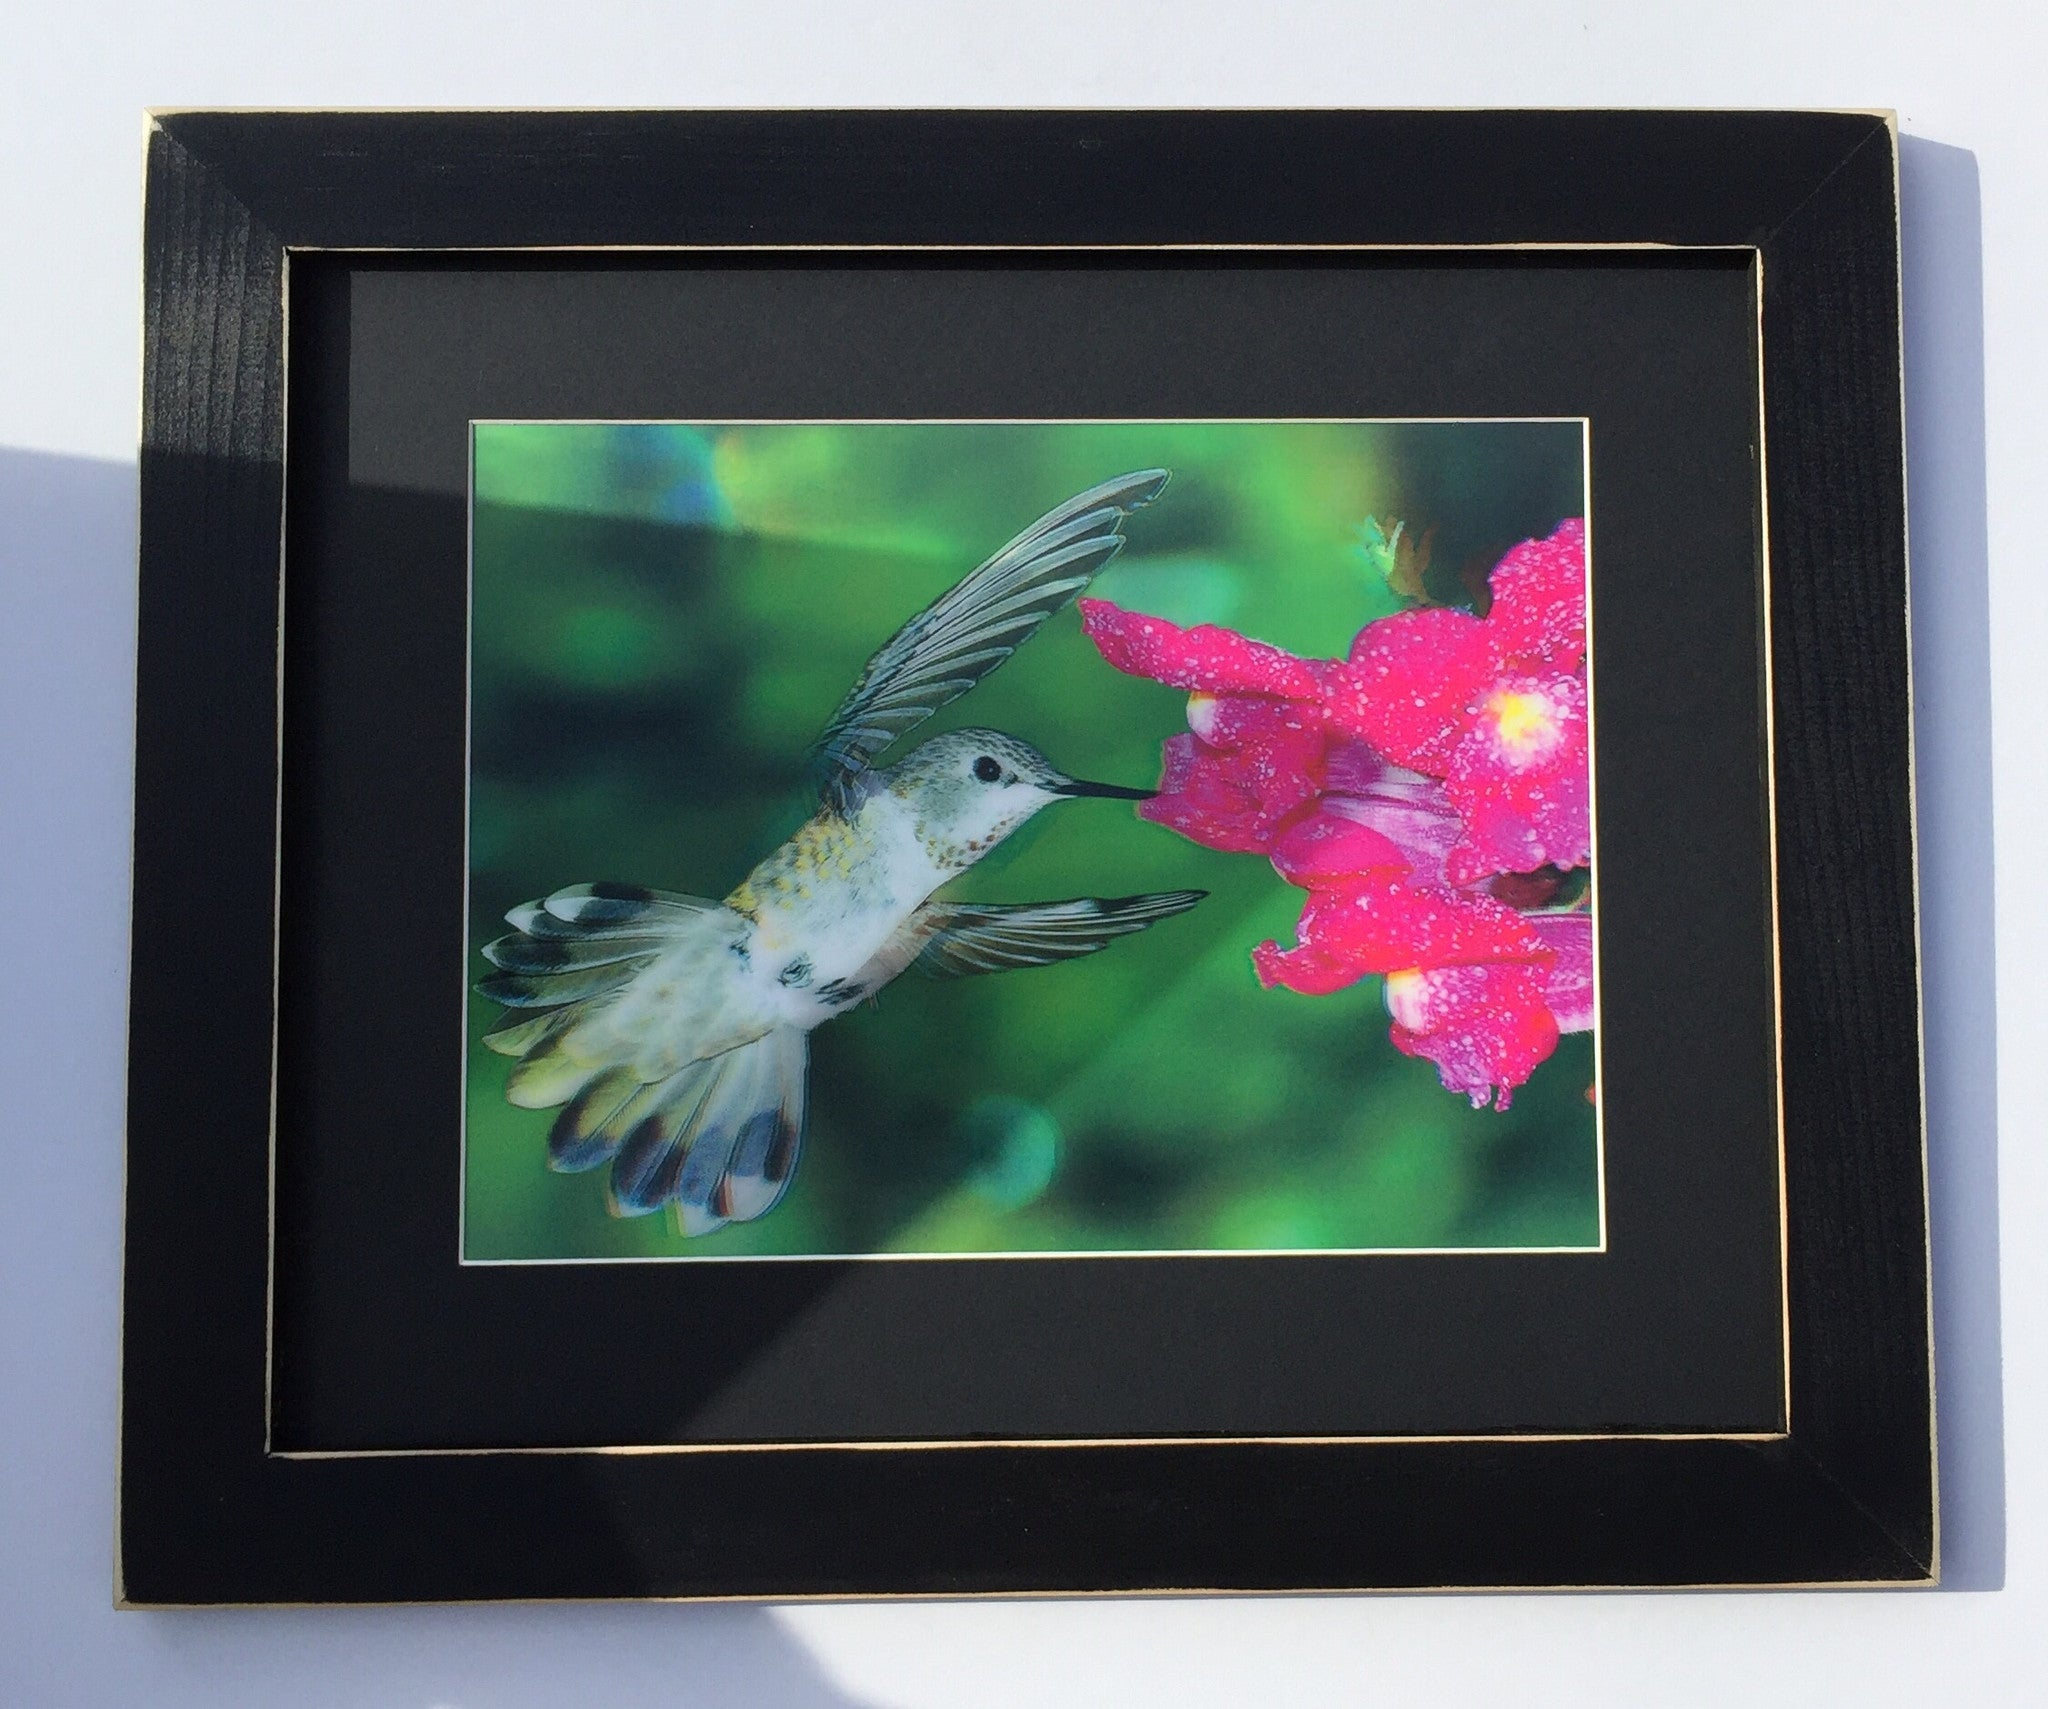 frame product today pewter overstock home shipping photo x mat free matted barcelona garden inch to